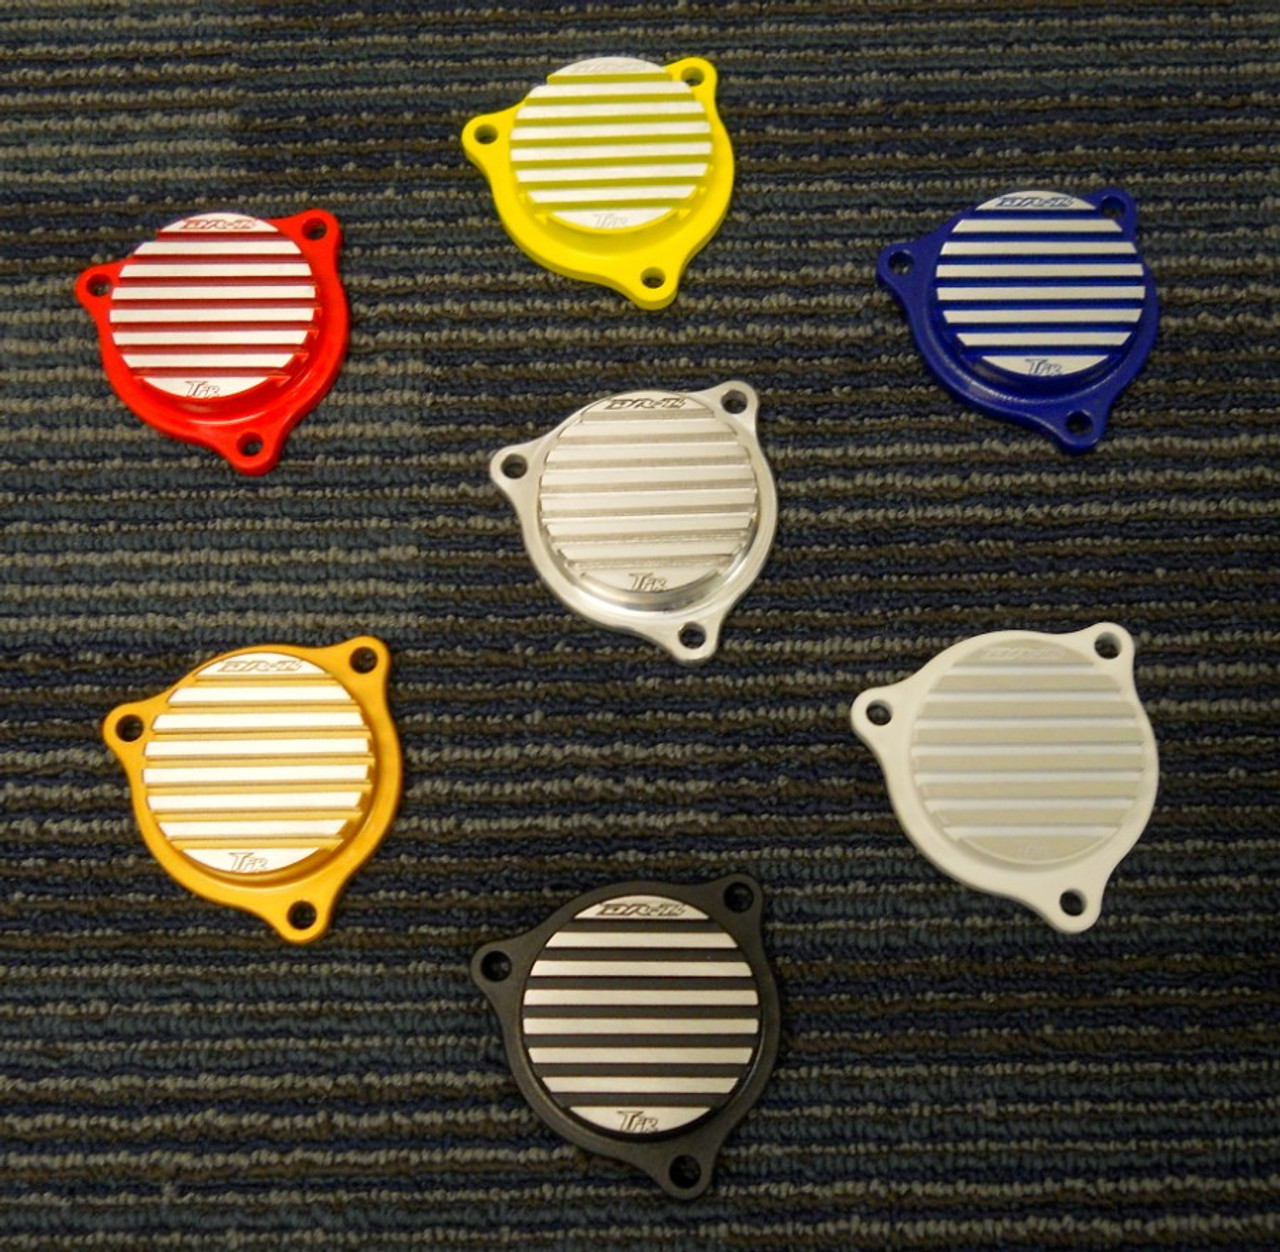 Finned Oil Filter Cap for DRZ400 (ALL Years and Models) - Billet Aluminum US Made by Topar Racing - Provides additional cooling - Available Colors